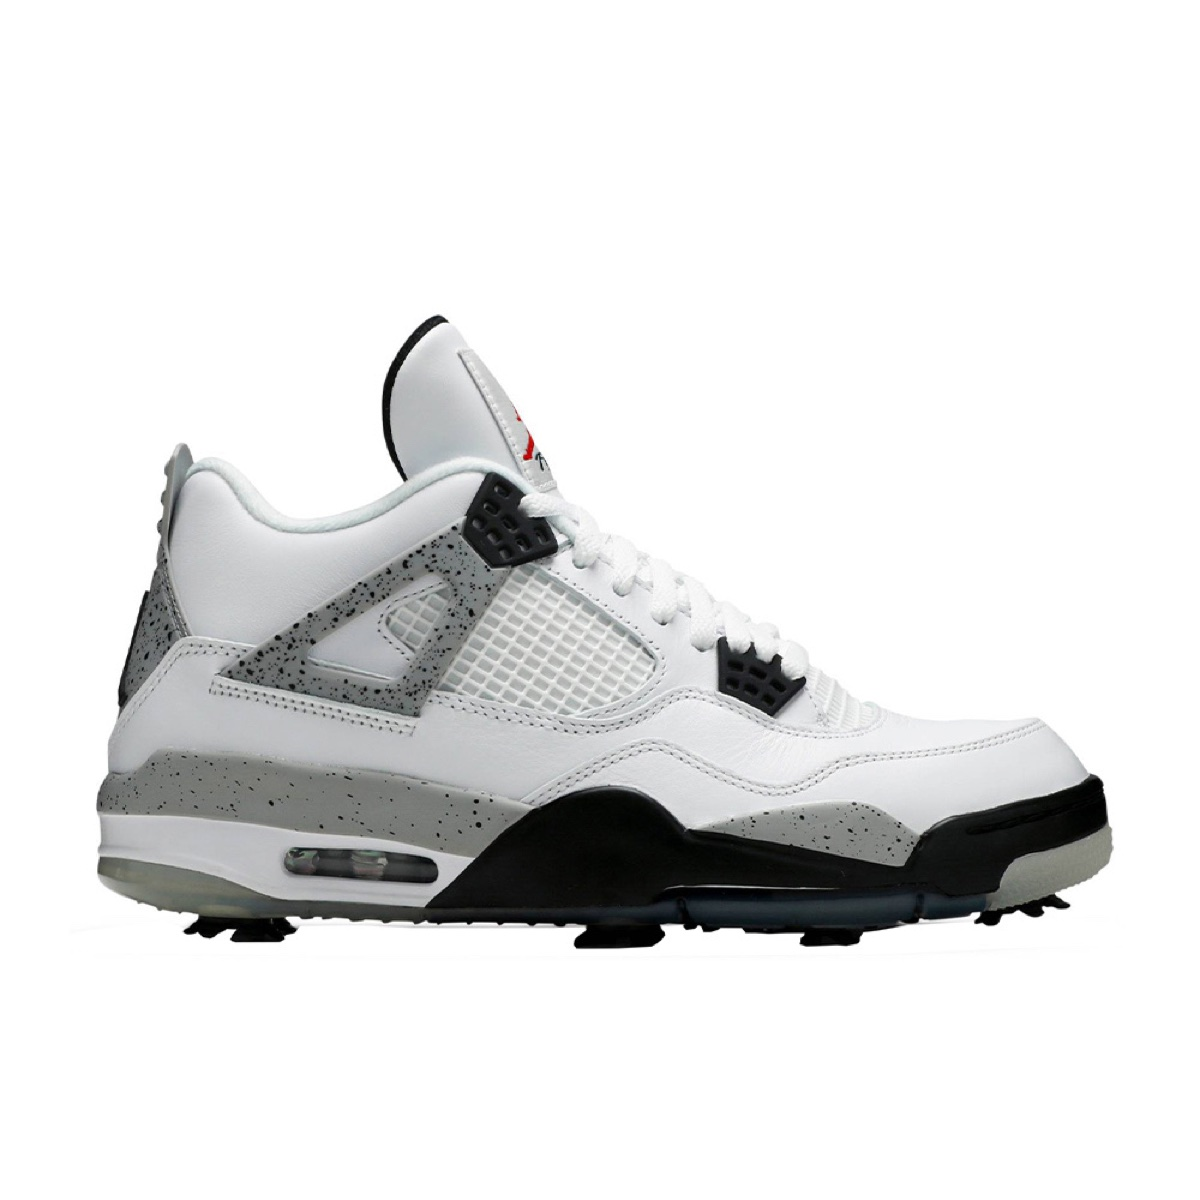 Jordan 4 Golf White Cement